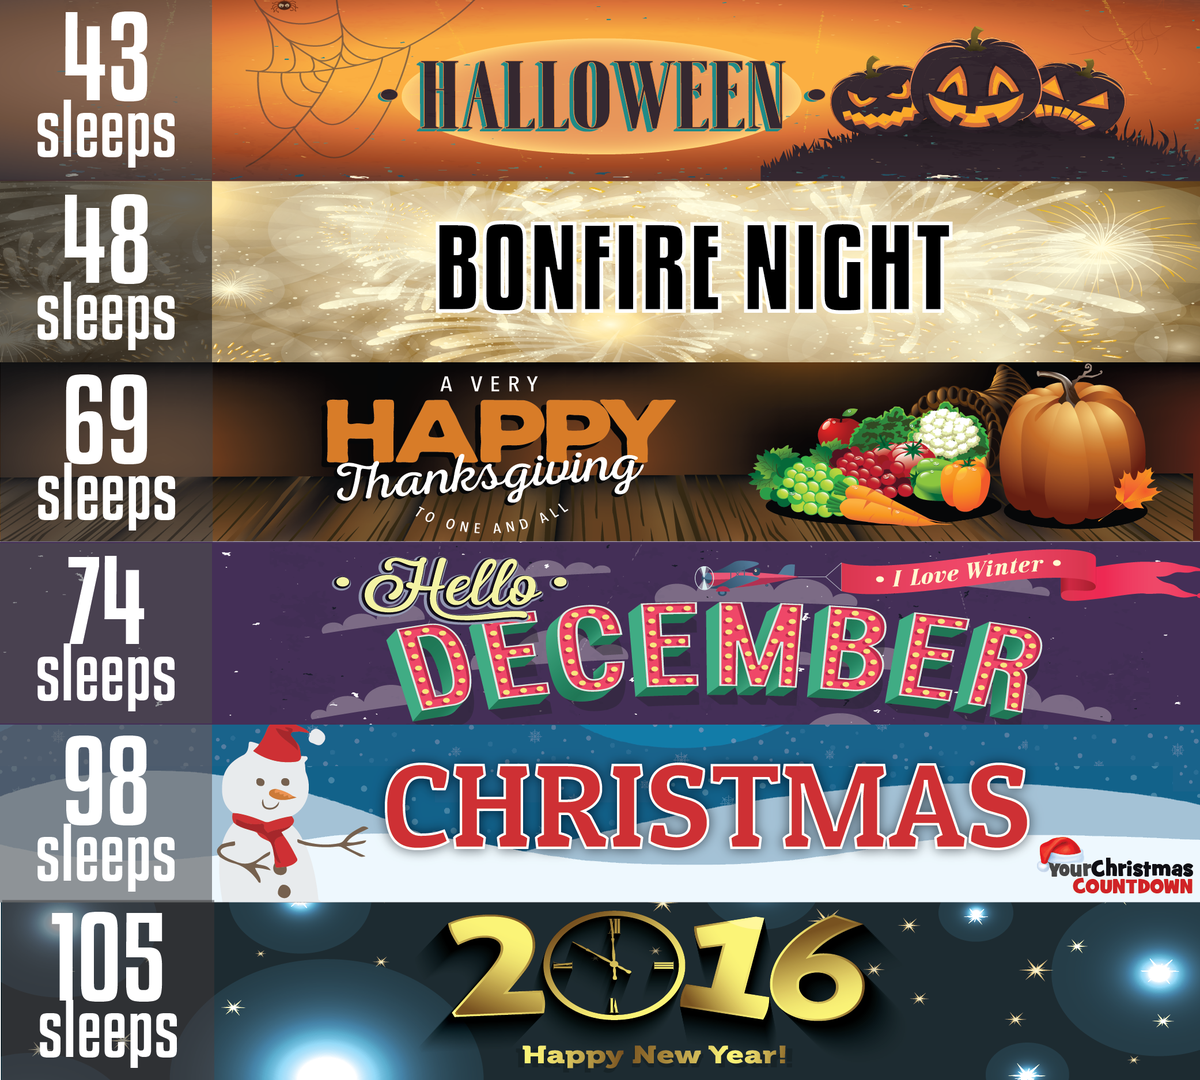 your christmas countdown on twitter sleeps left until halloween bonfirenight thanksgiving december christmas newyear httptco08kjvawqc2 - Halloween Thanksgiving Christmas